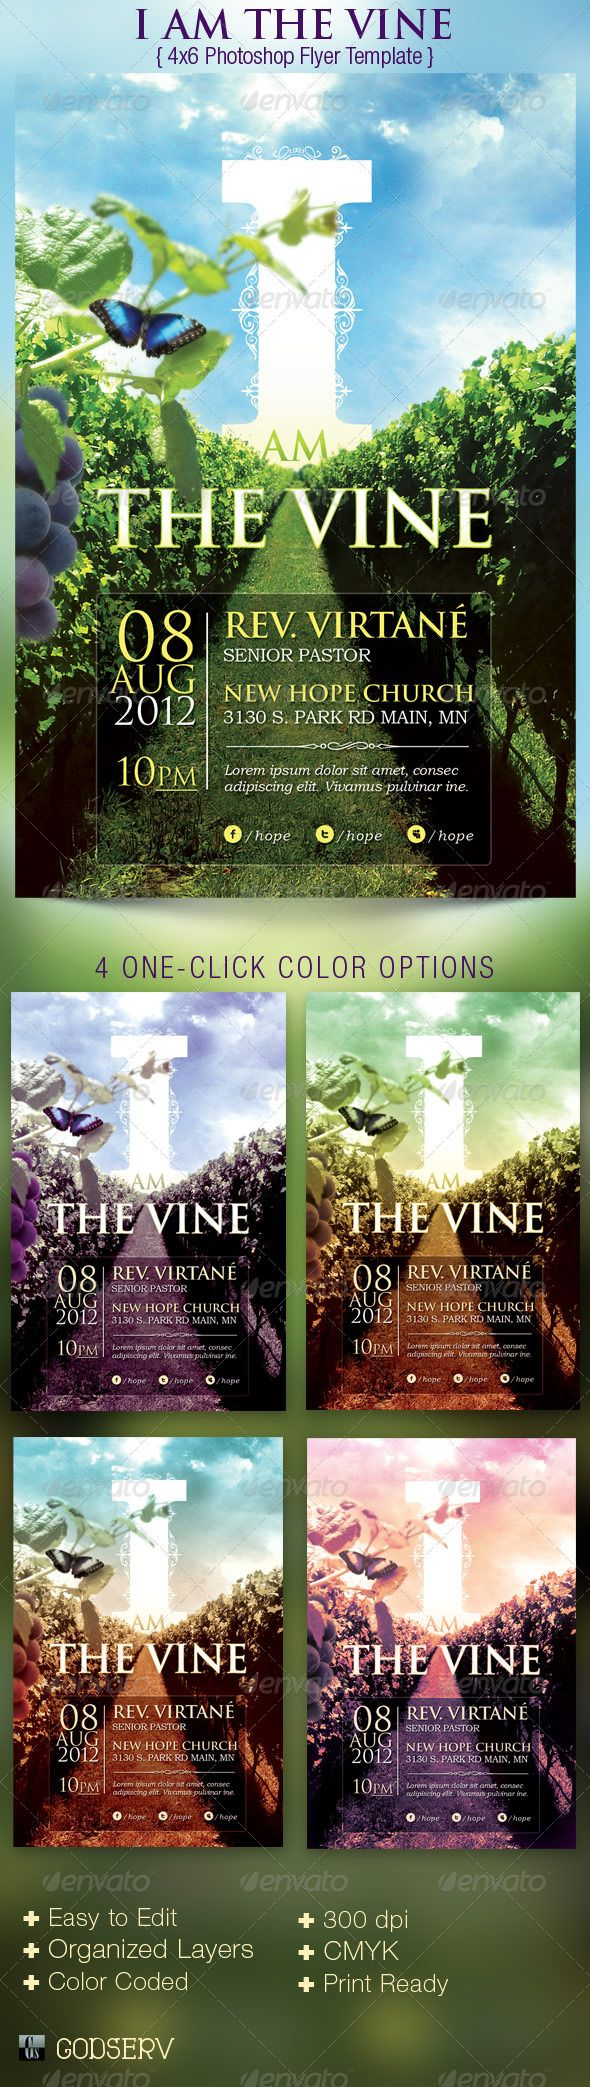 The I Am The Vine Church Flyer Template is geared towards usage for Church Sermon Series and Bible Studies etc. Can be used for general sunday worship, bible studies etc. - $6.00